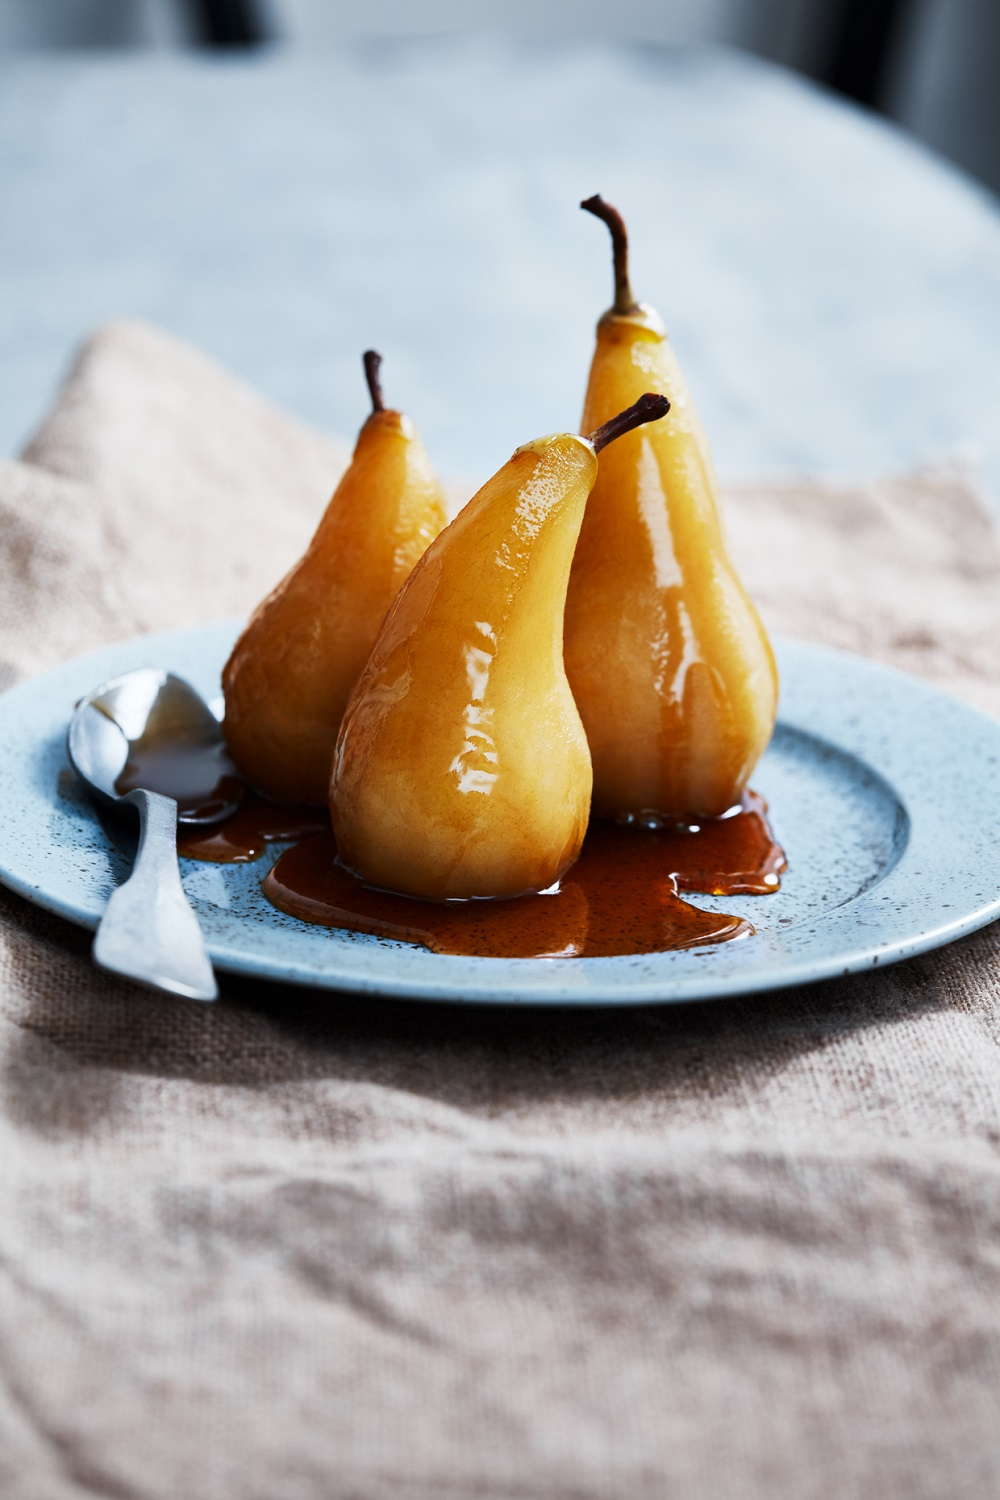 A Recipe From Milly's Cookbook: Cinnamon And Chai Tea Poached South African Pears